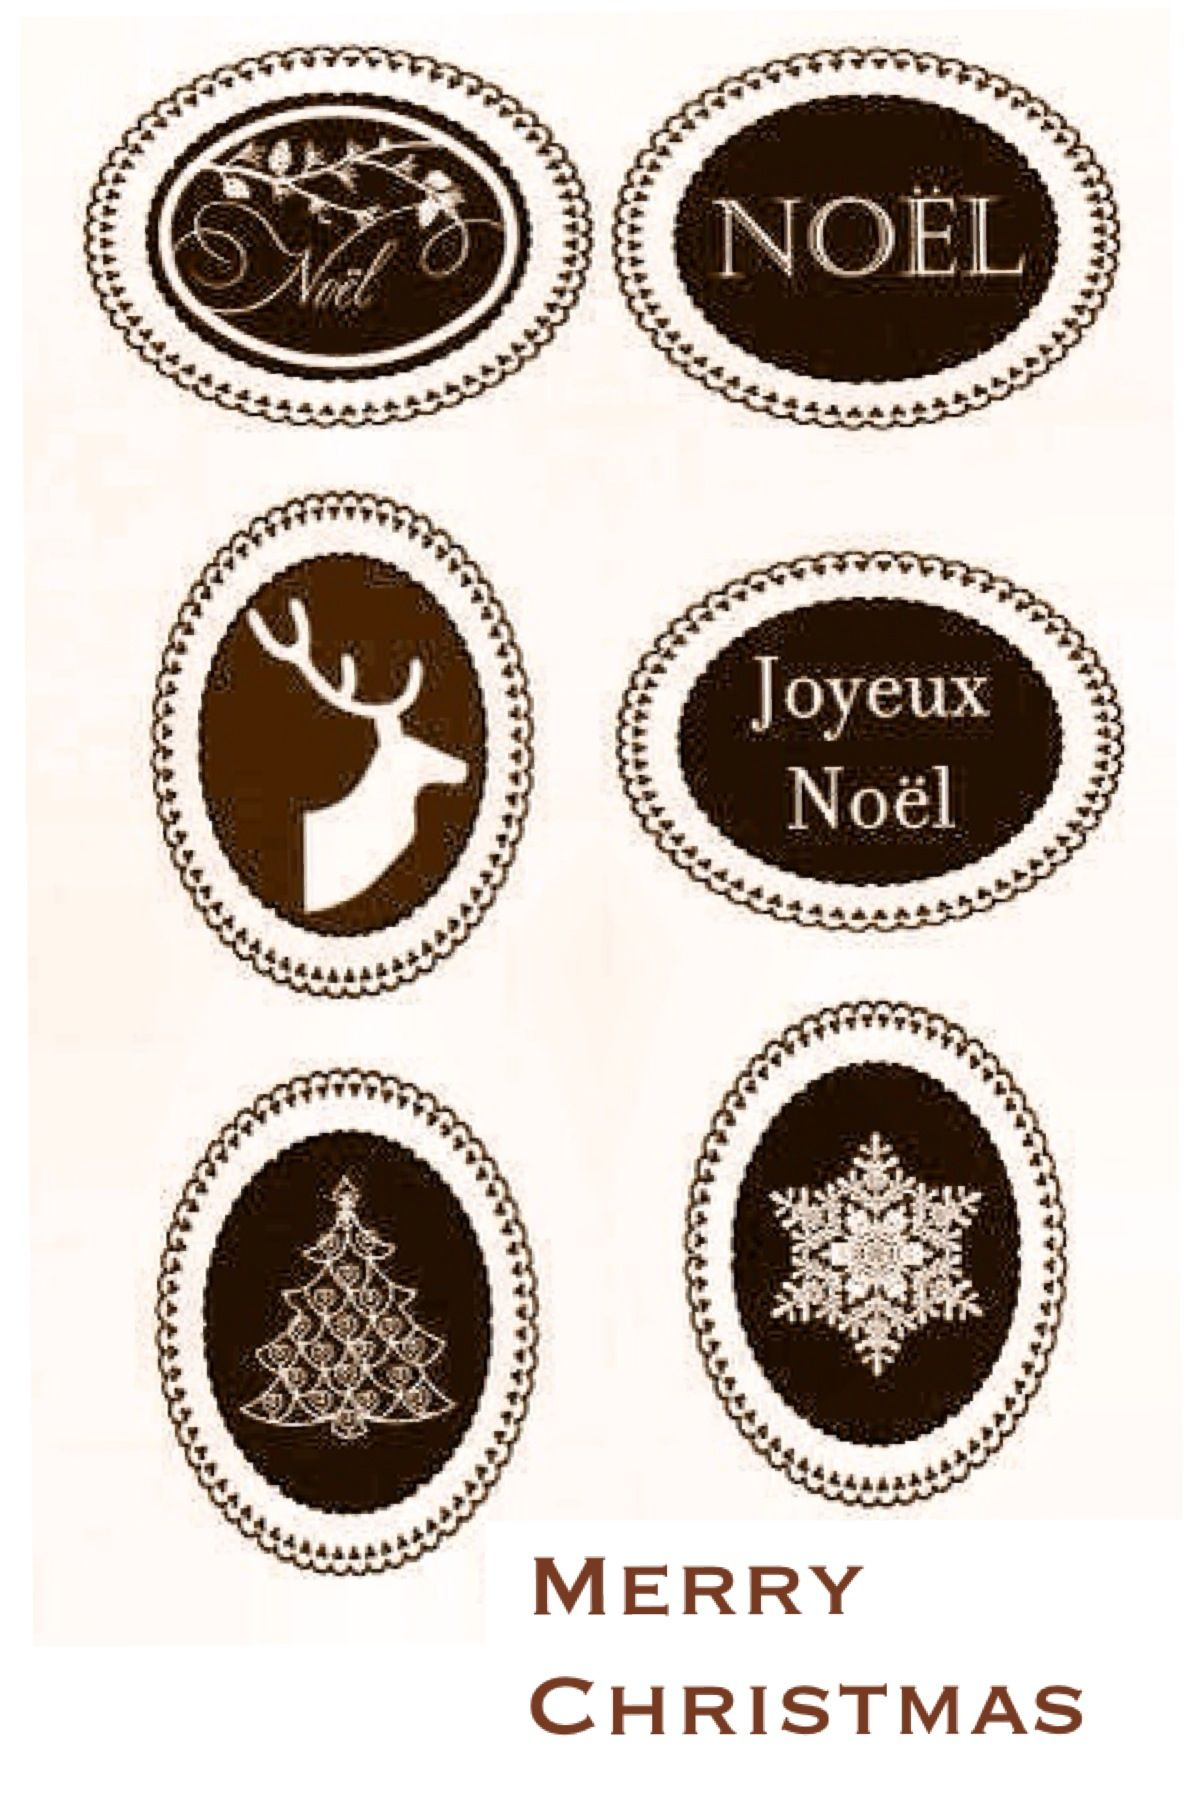 Free Printable Christmas Labels Rustic And Tags Save Image Into Your Camera Roll Email To Staples Or Kinkos Have Them Printed On Avery